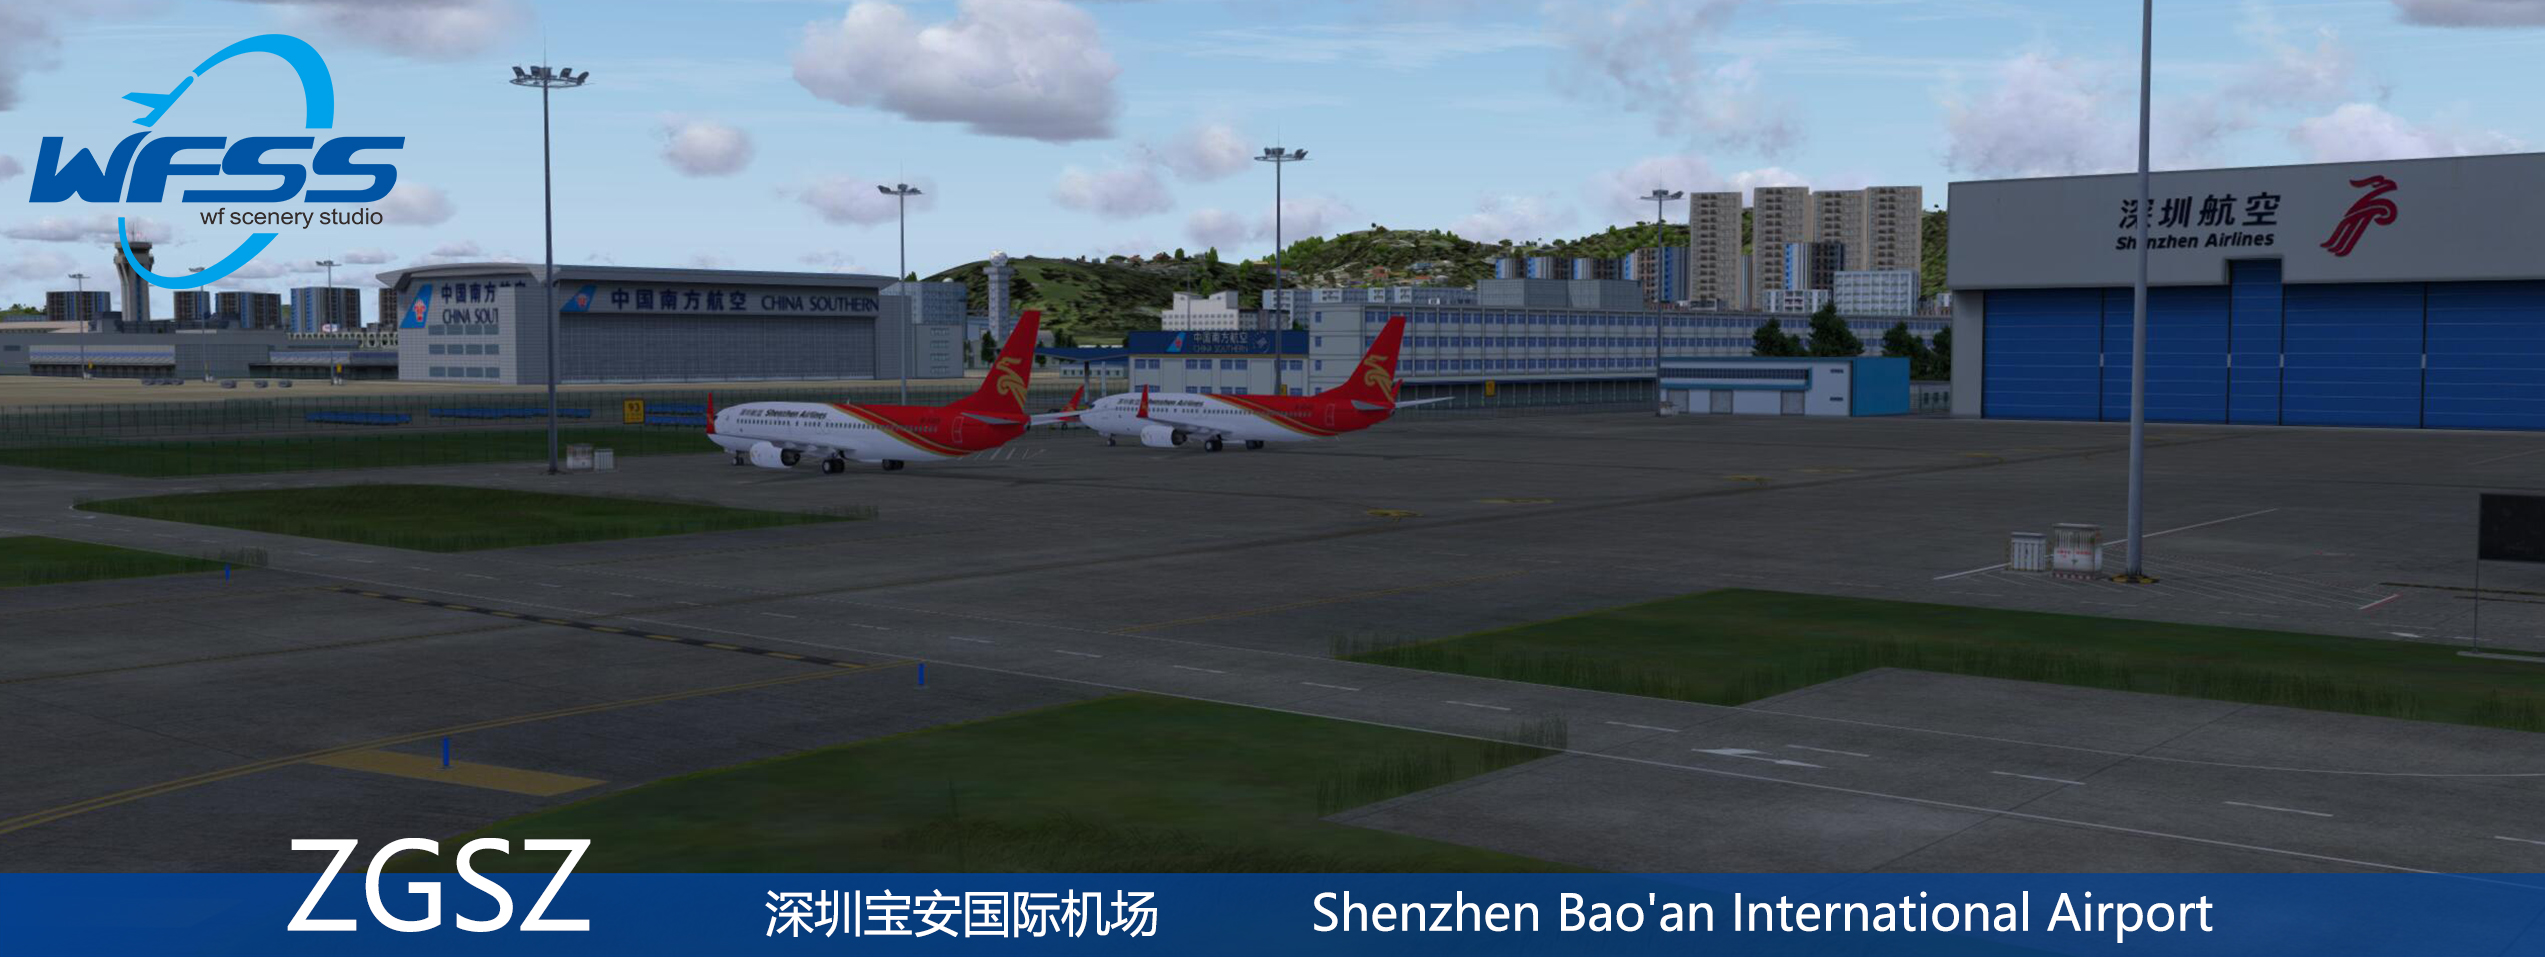 WF SCENERY STUDIO - SHENZHEN BAO'AN INTERNATIONAL AIRPORT ZGSZ P3D4 P3D5